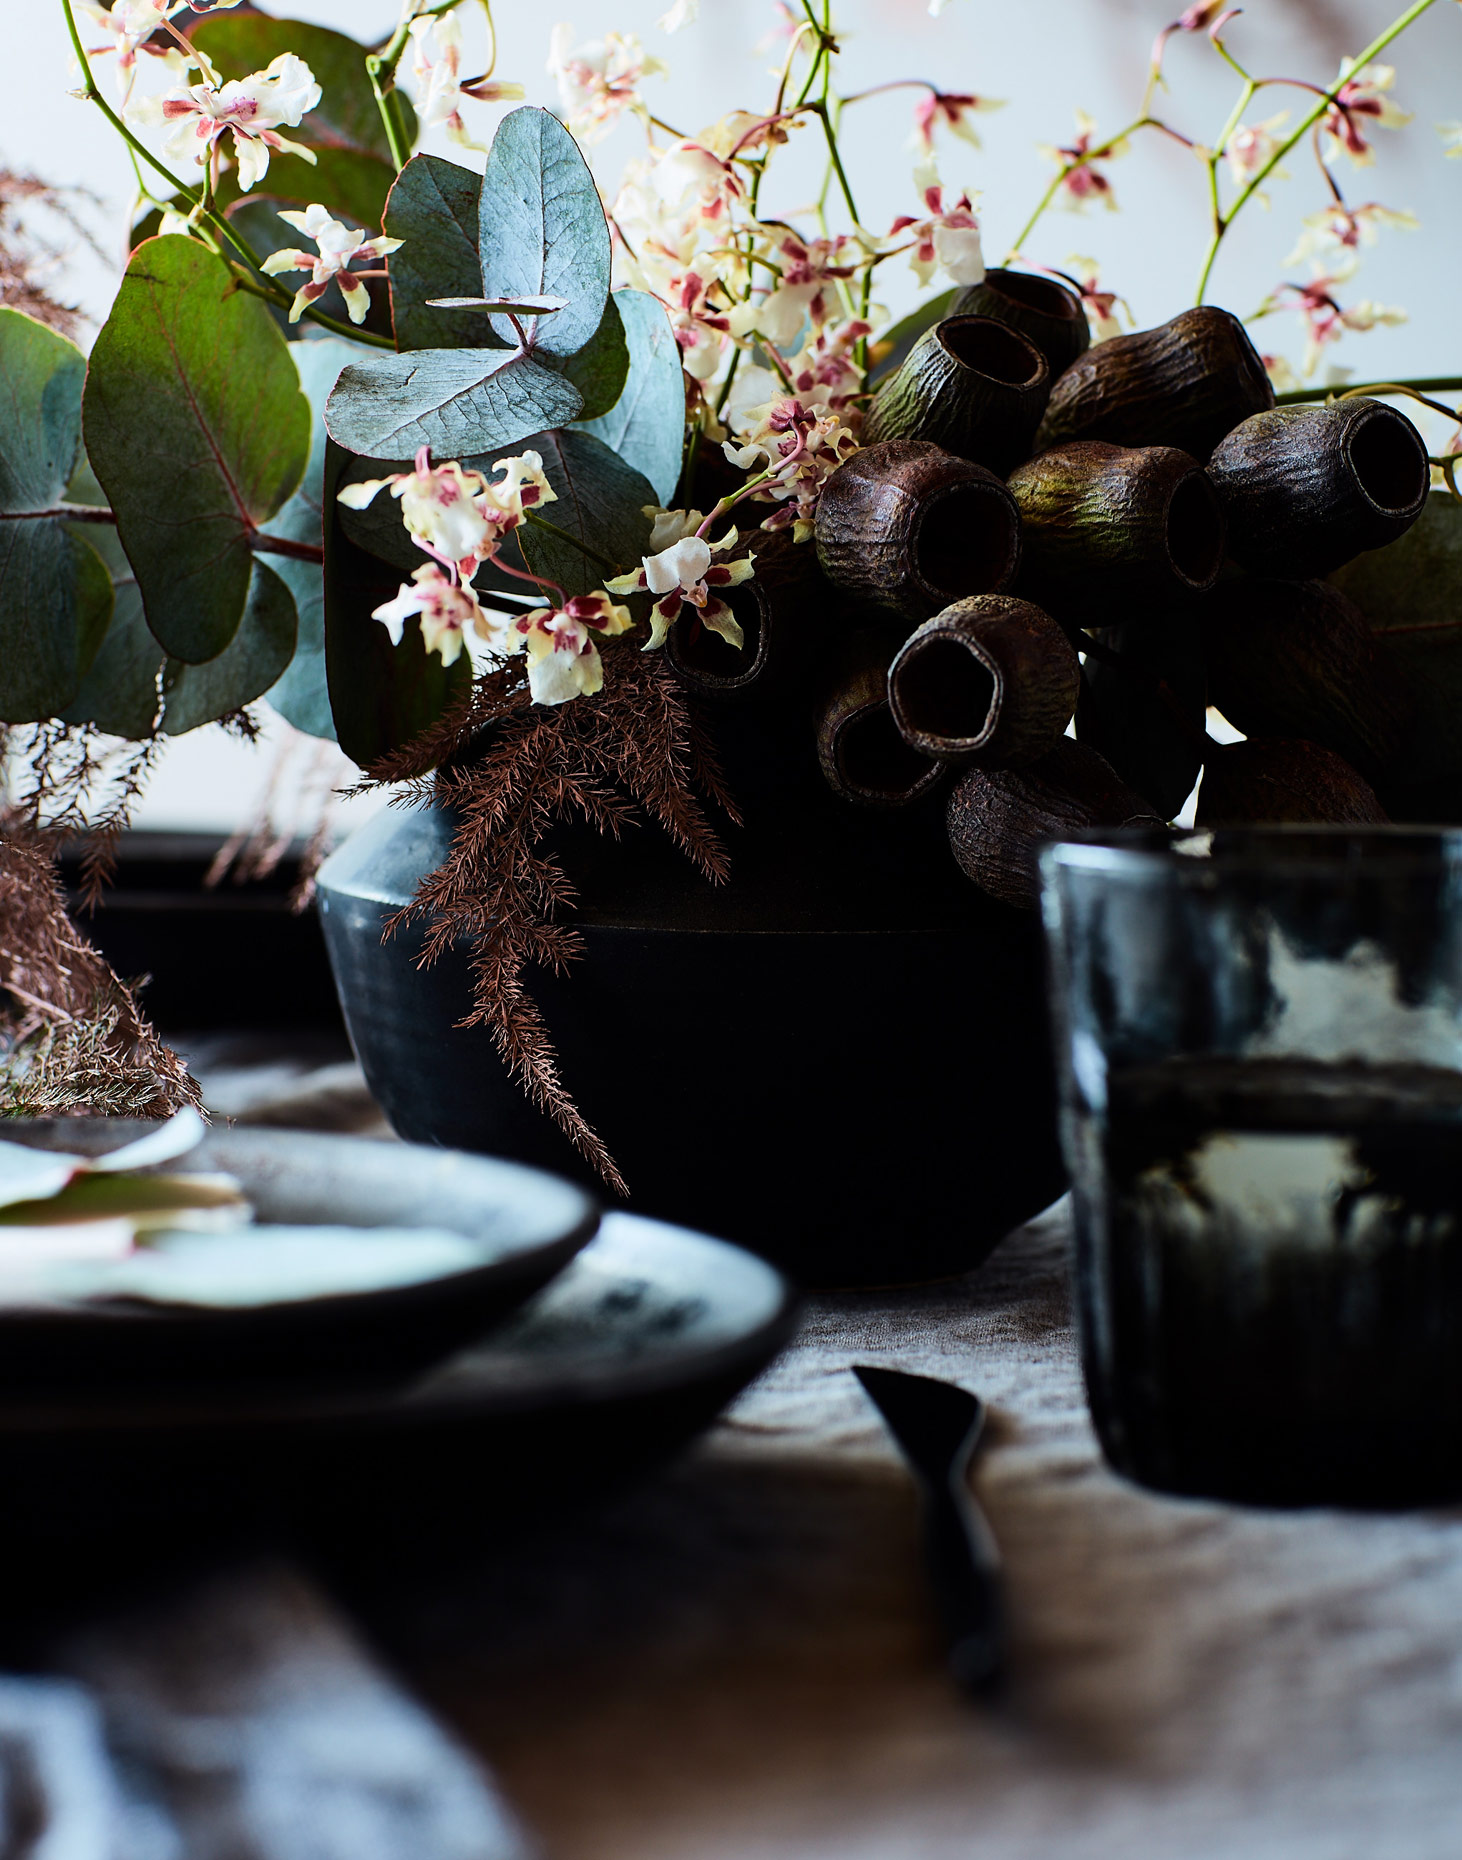 20161019_EyeSwoon_S169_WINTER_TablescapeDetail_1963